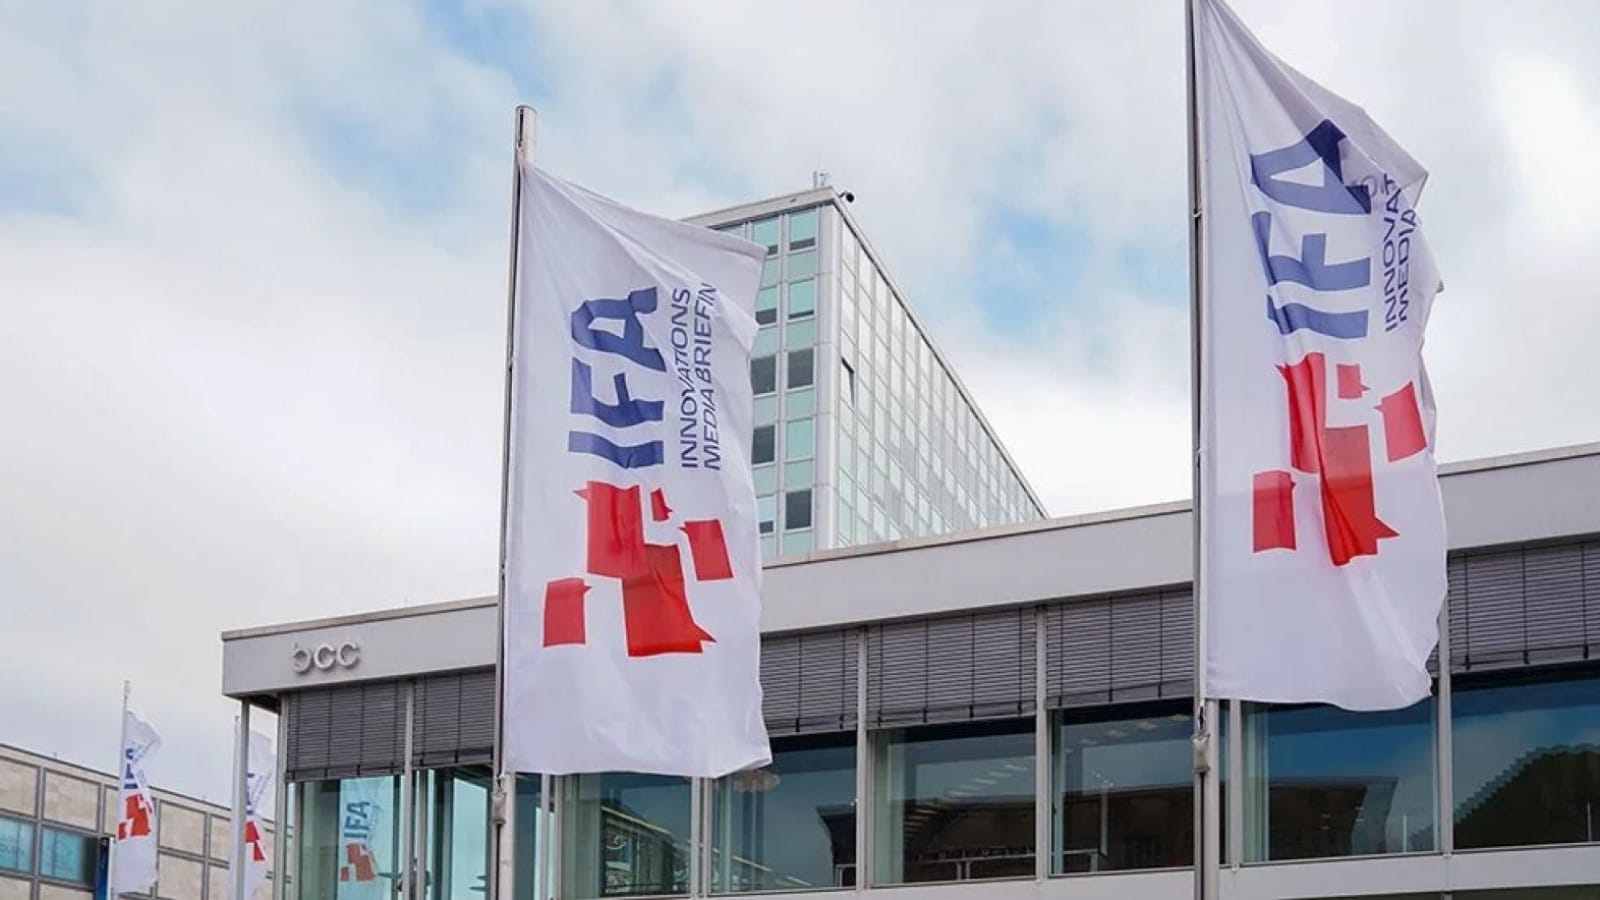 IFA 2019 is coming - here's what to expect this week